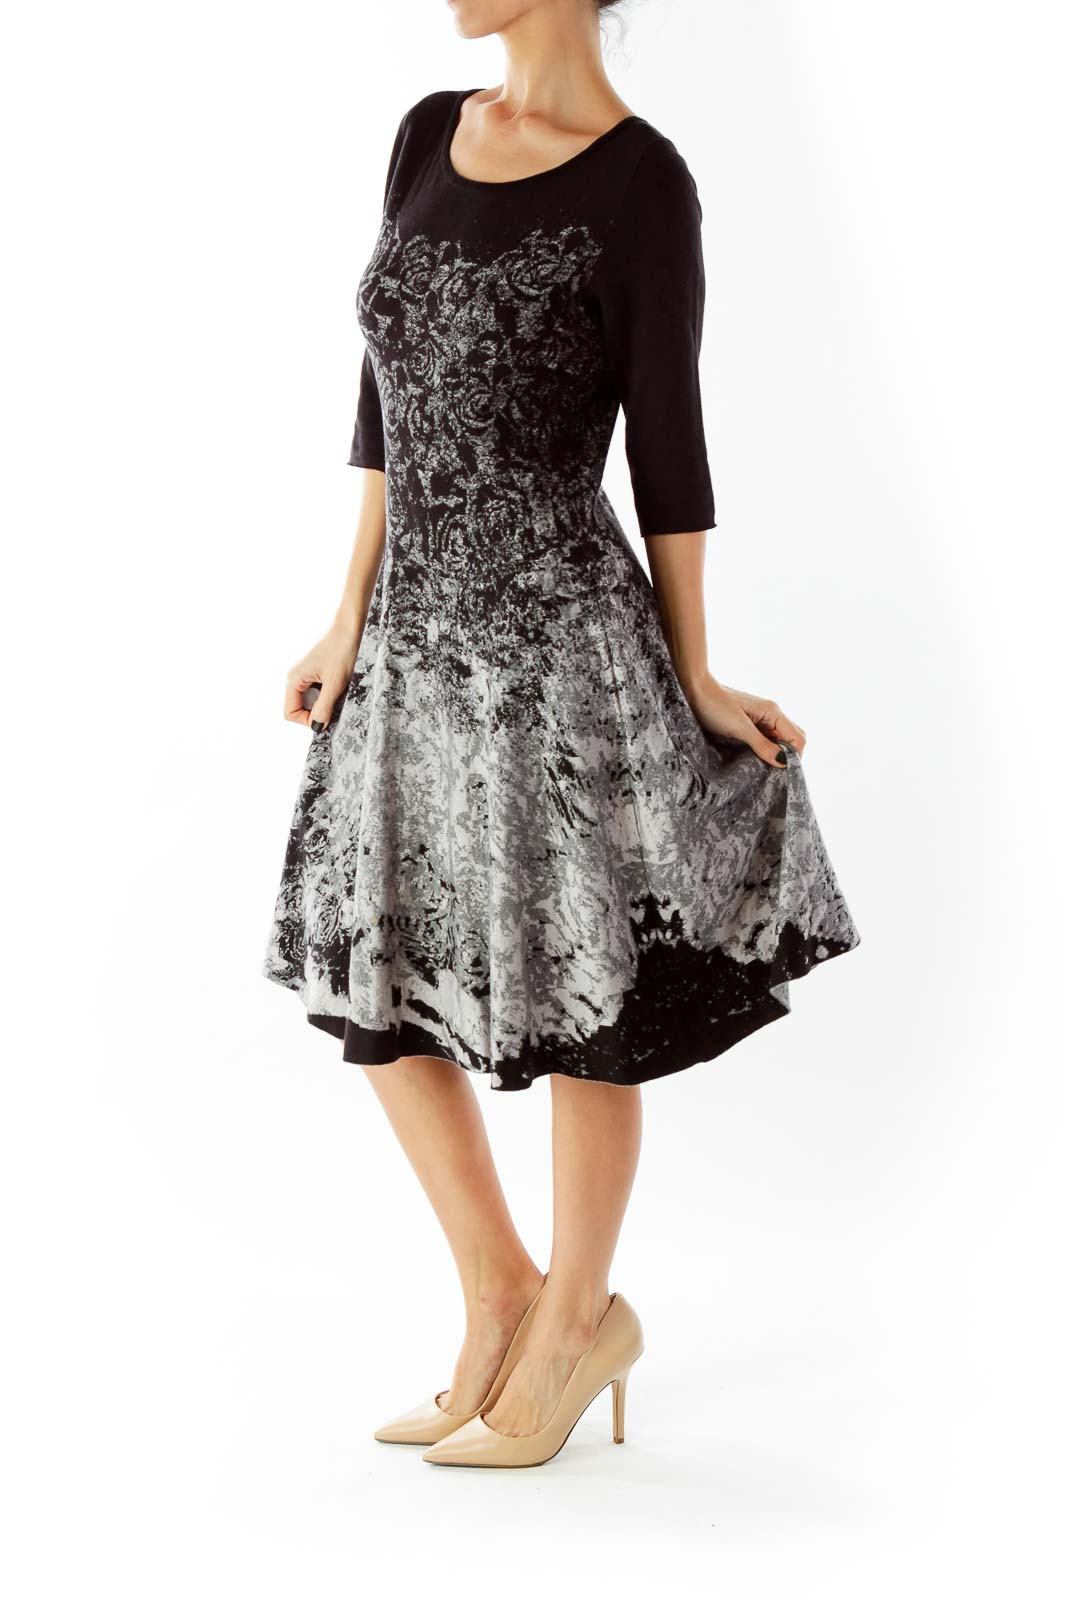 Black White Gray Floral Three Quarter Sleeve Knit Dress